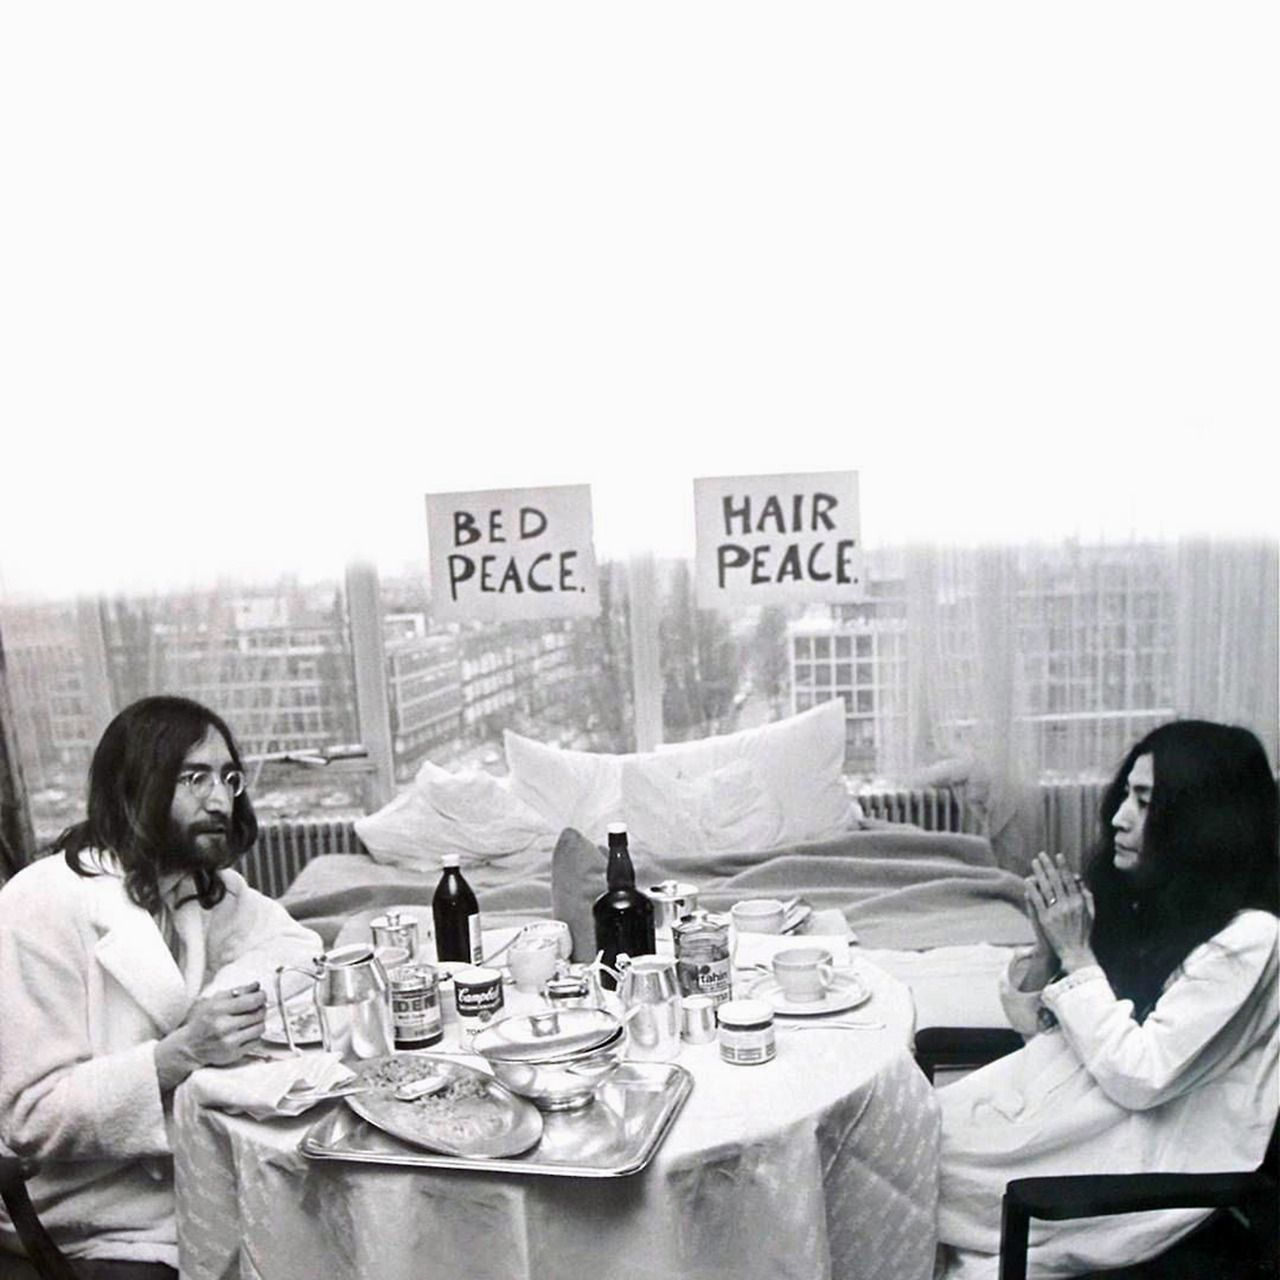 "We're only trying to get us some breakfast"".. 